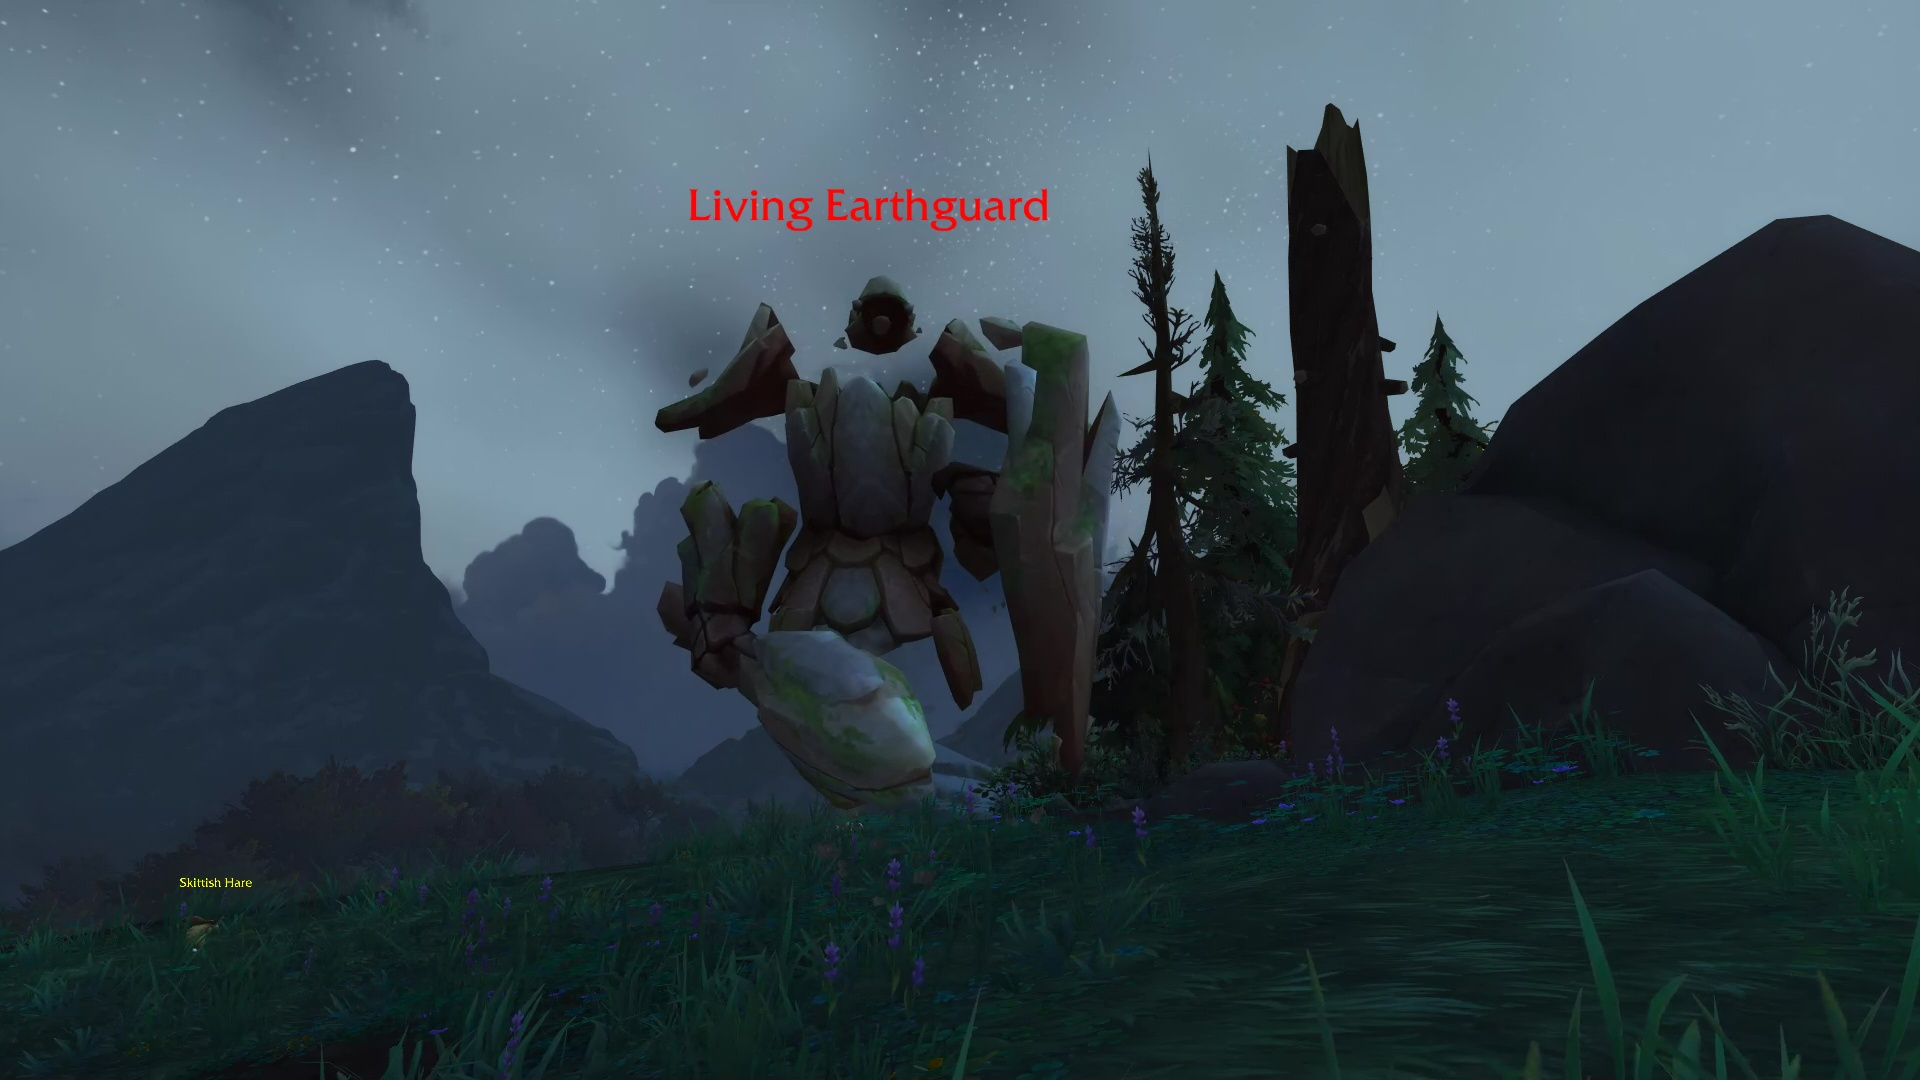 living earthguard